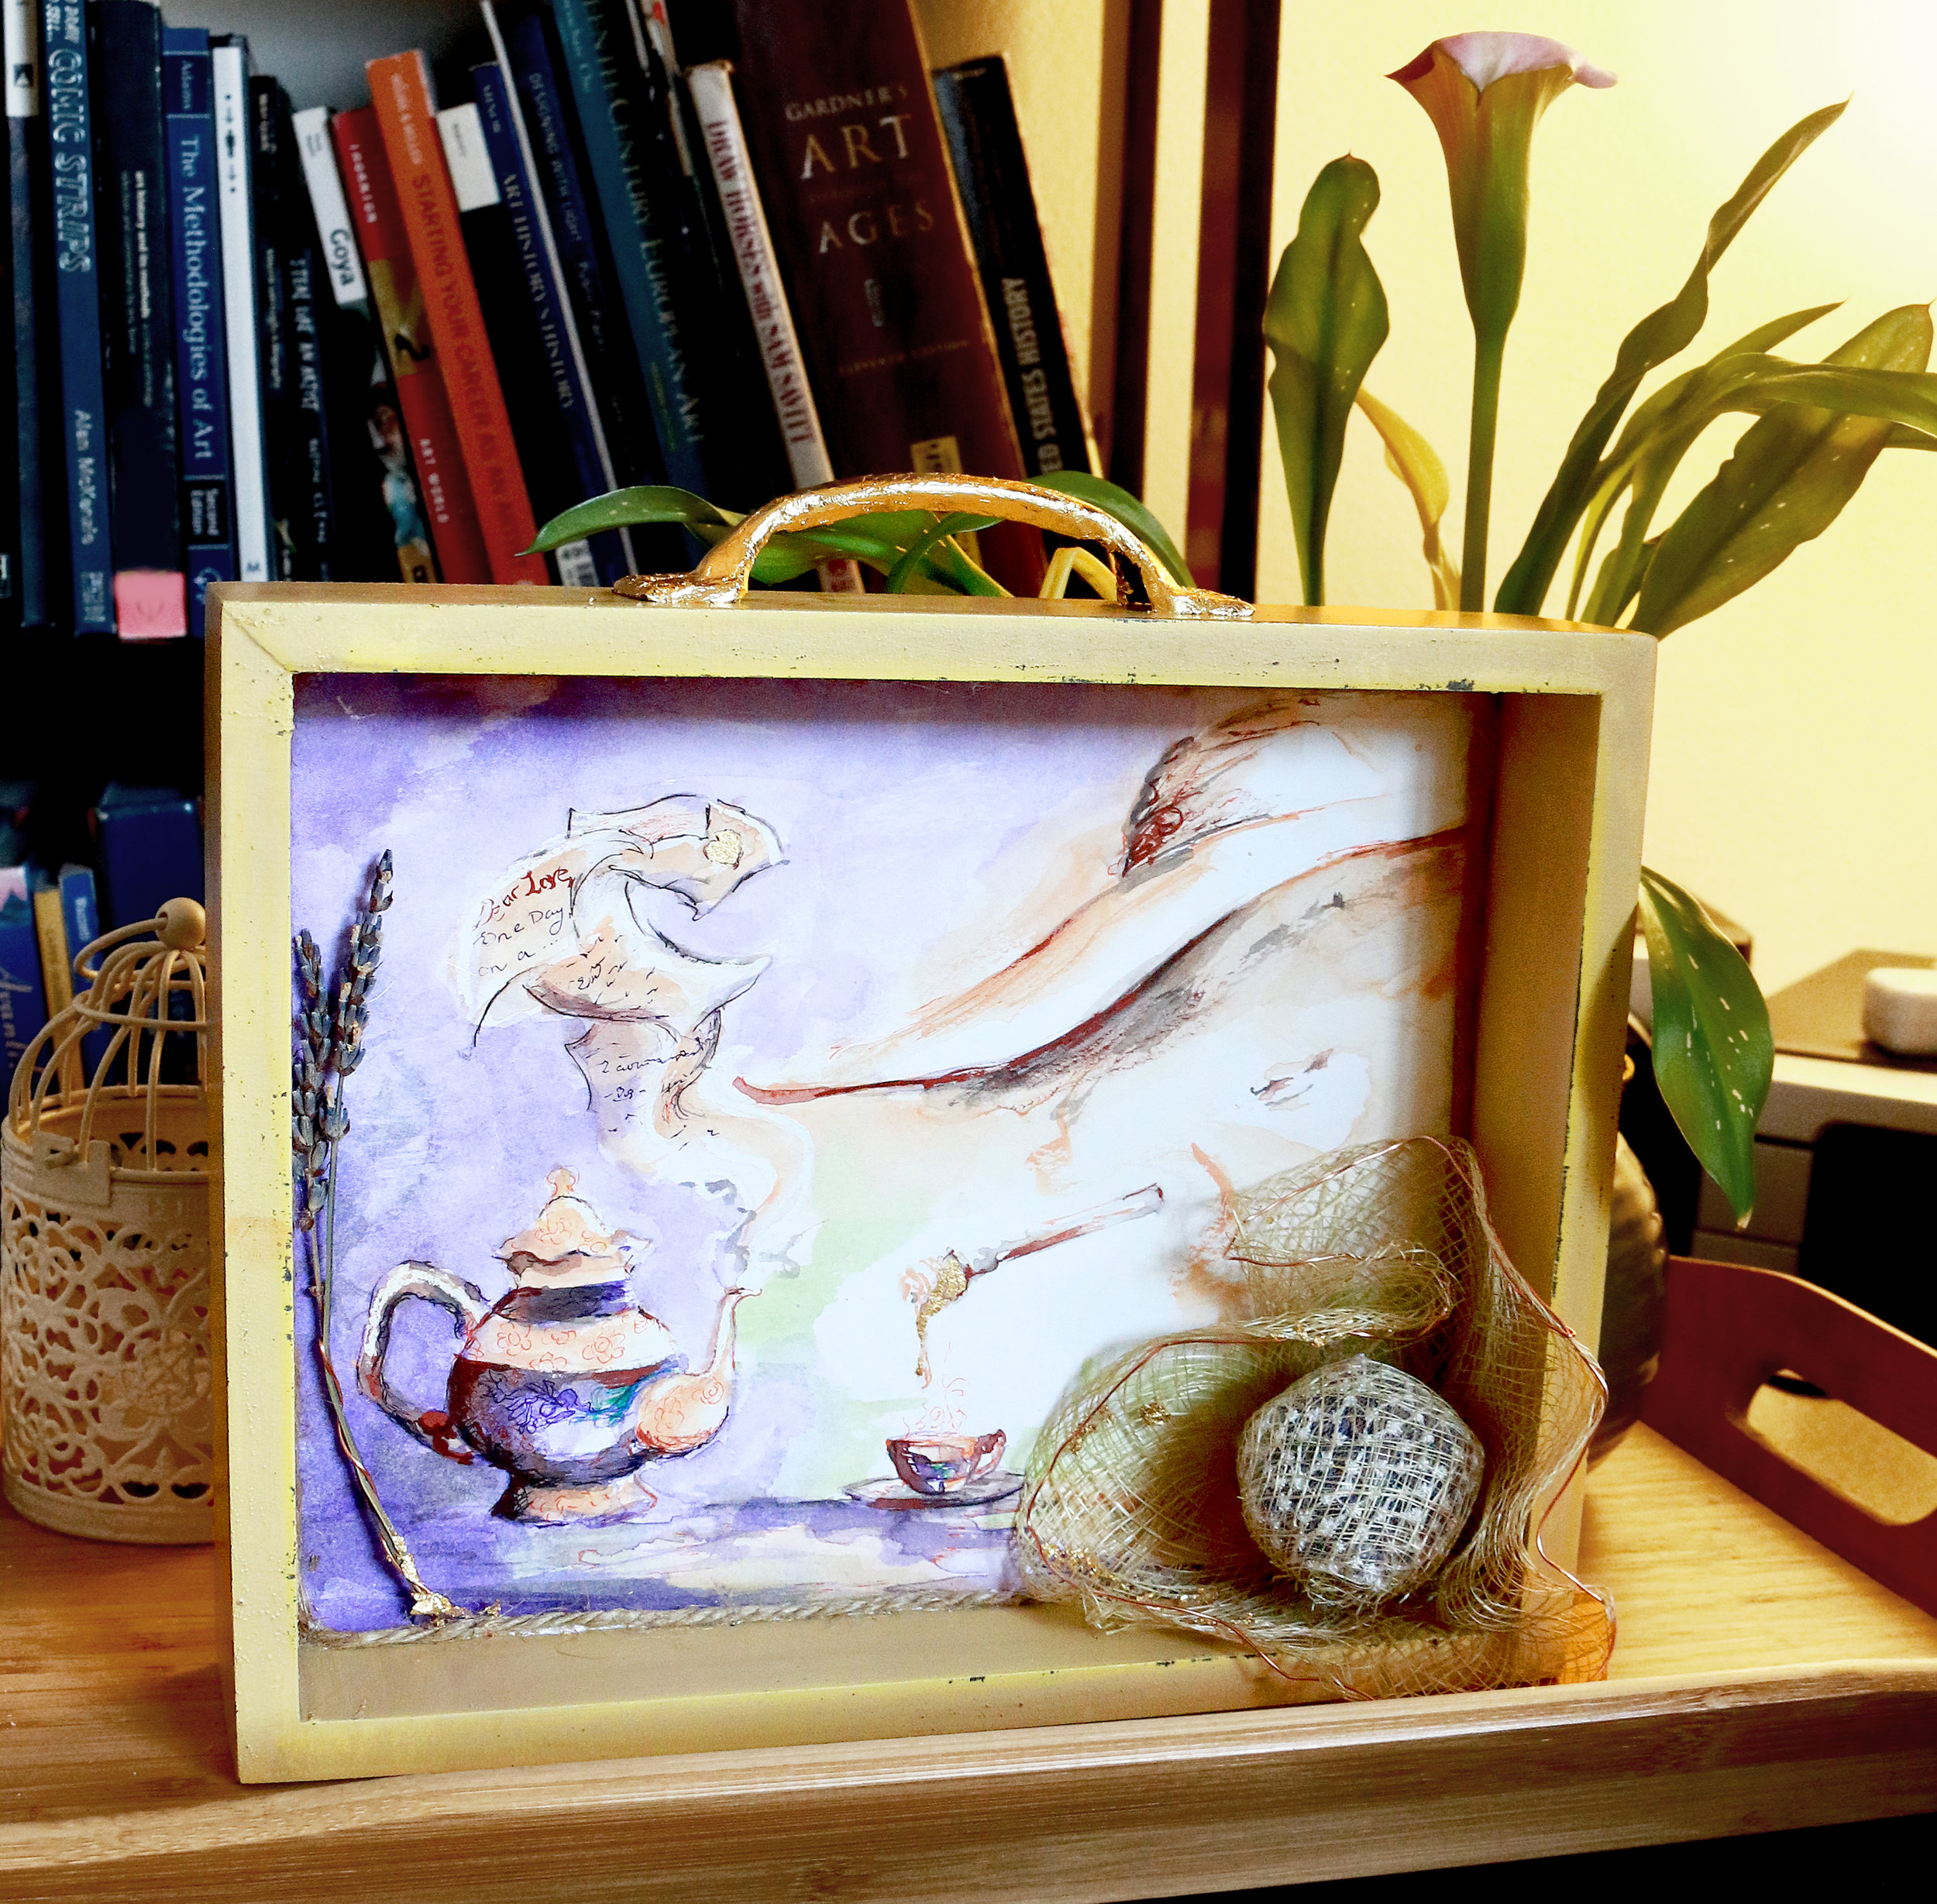 """This painting above is a multi-media water piece that I had so much fun making! I have two more similar ones on the way. This one is called """"Lavender Honey"""" and has real dried lavender inside the hat on the bottom right. It smells so good! The frame is a drawer and there is gold leaf painting in some areas to give the piece a twinkle of shine and warmth. Yey! Selling it at $200."""